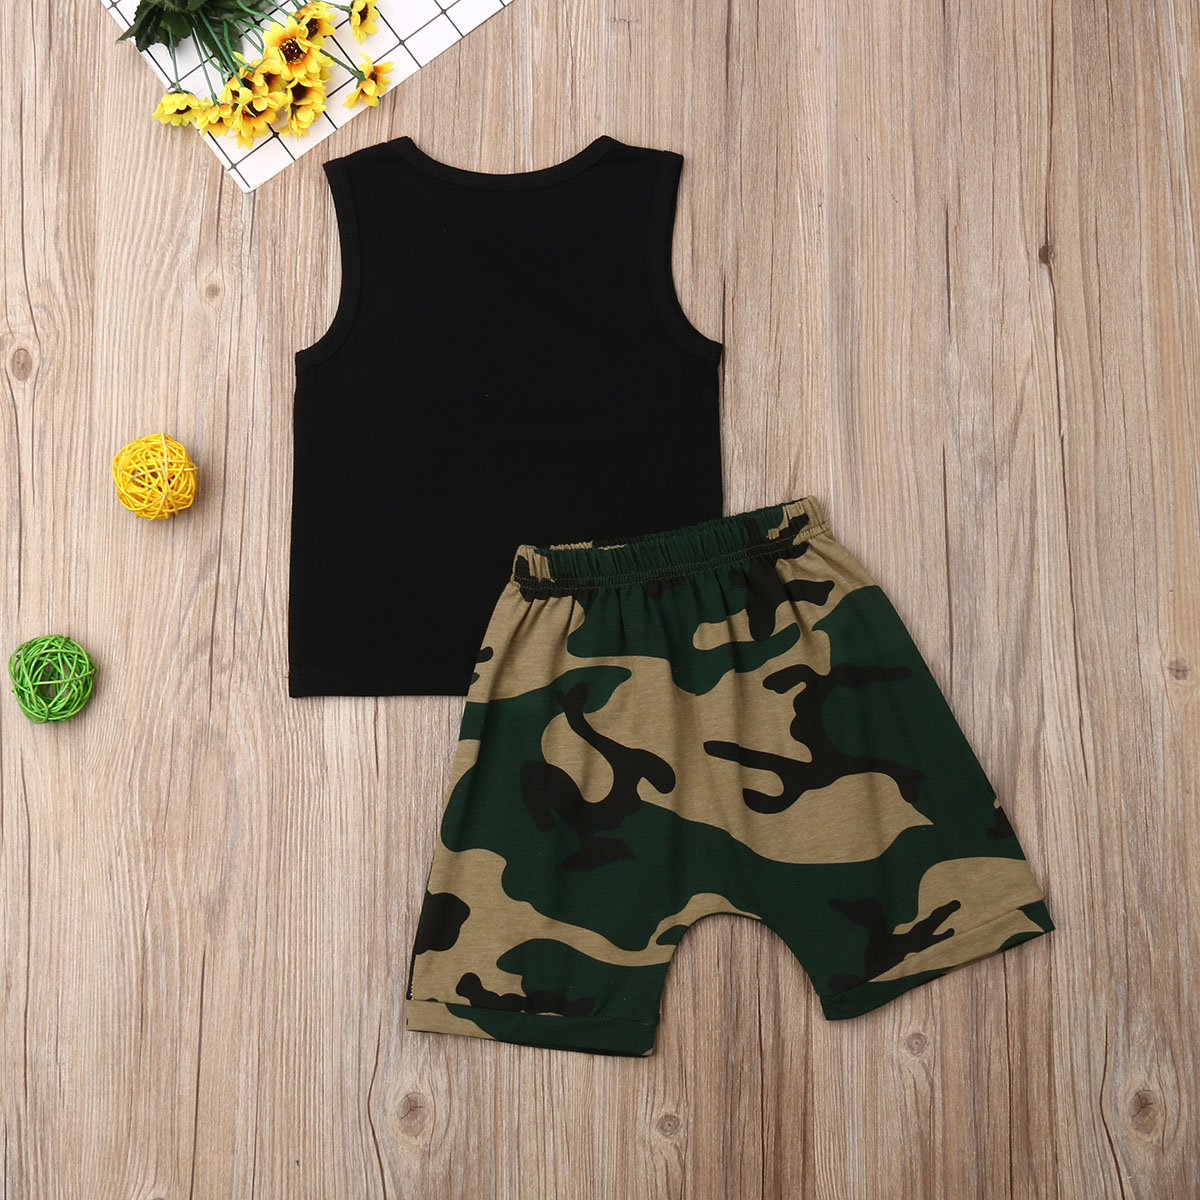 0 24M Toddler Infant Baby Boy 2Pcs Summer Clothes Letter Print Sleeveless Vest Tops Camouflage Shorts Outfit Baby Clothing Set in Clothing Sets from Mother Kids